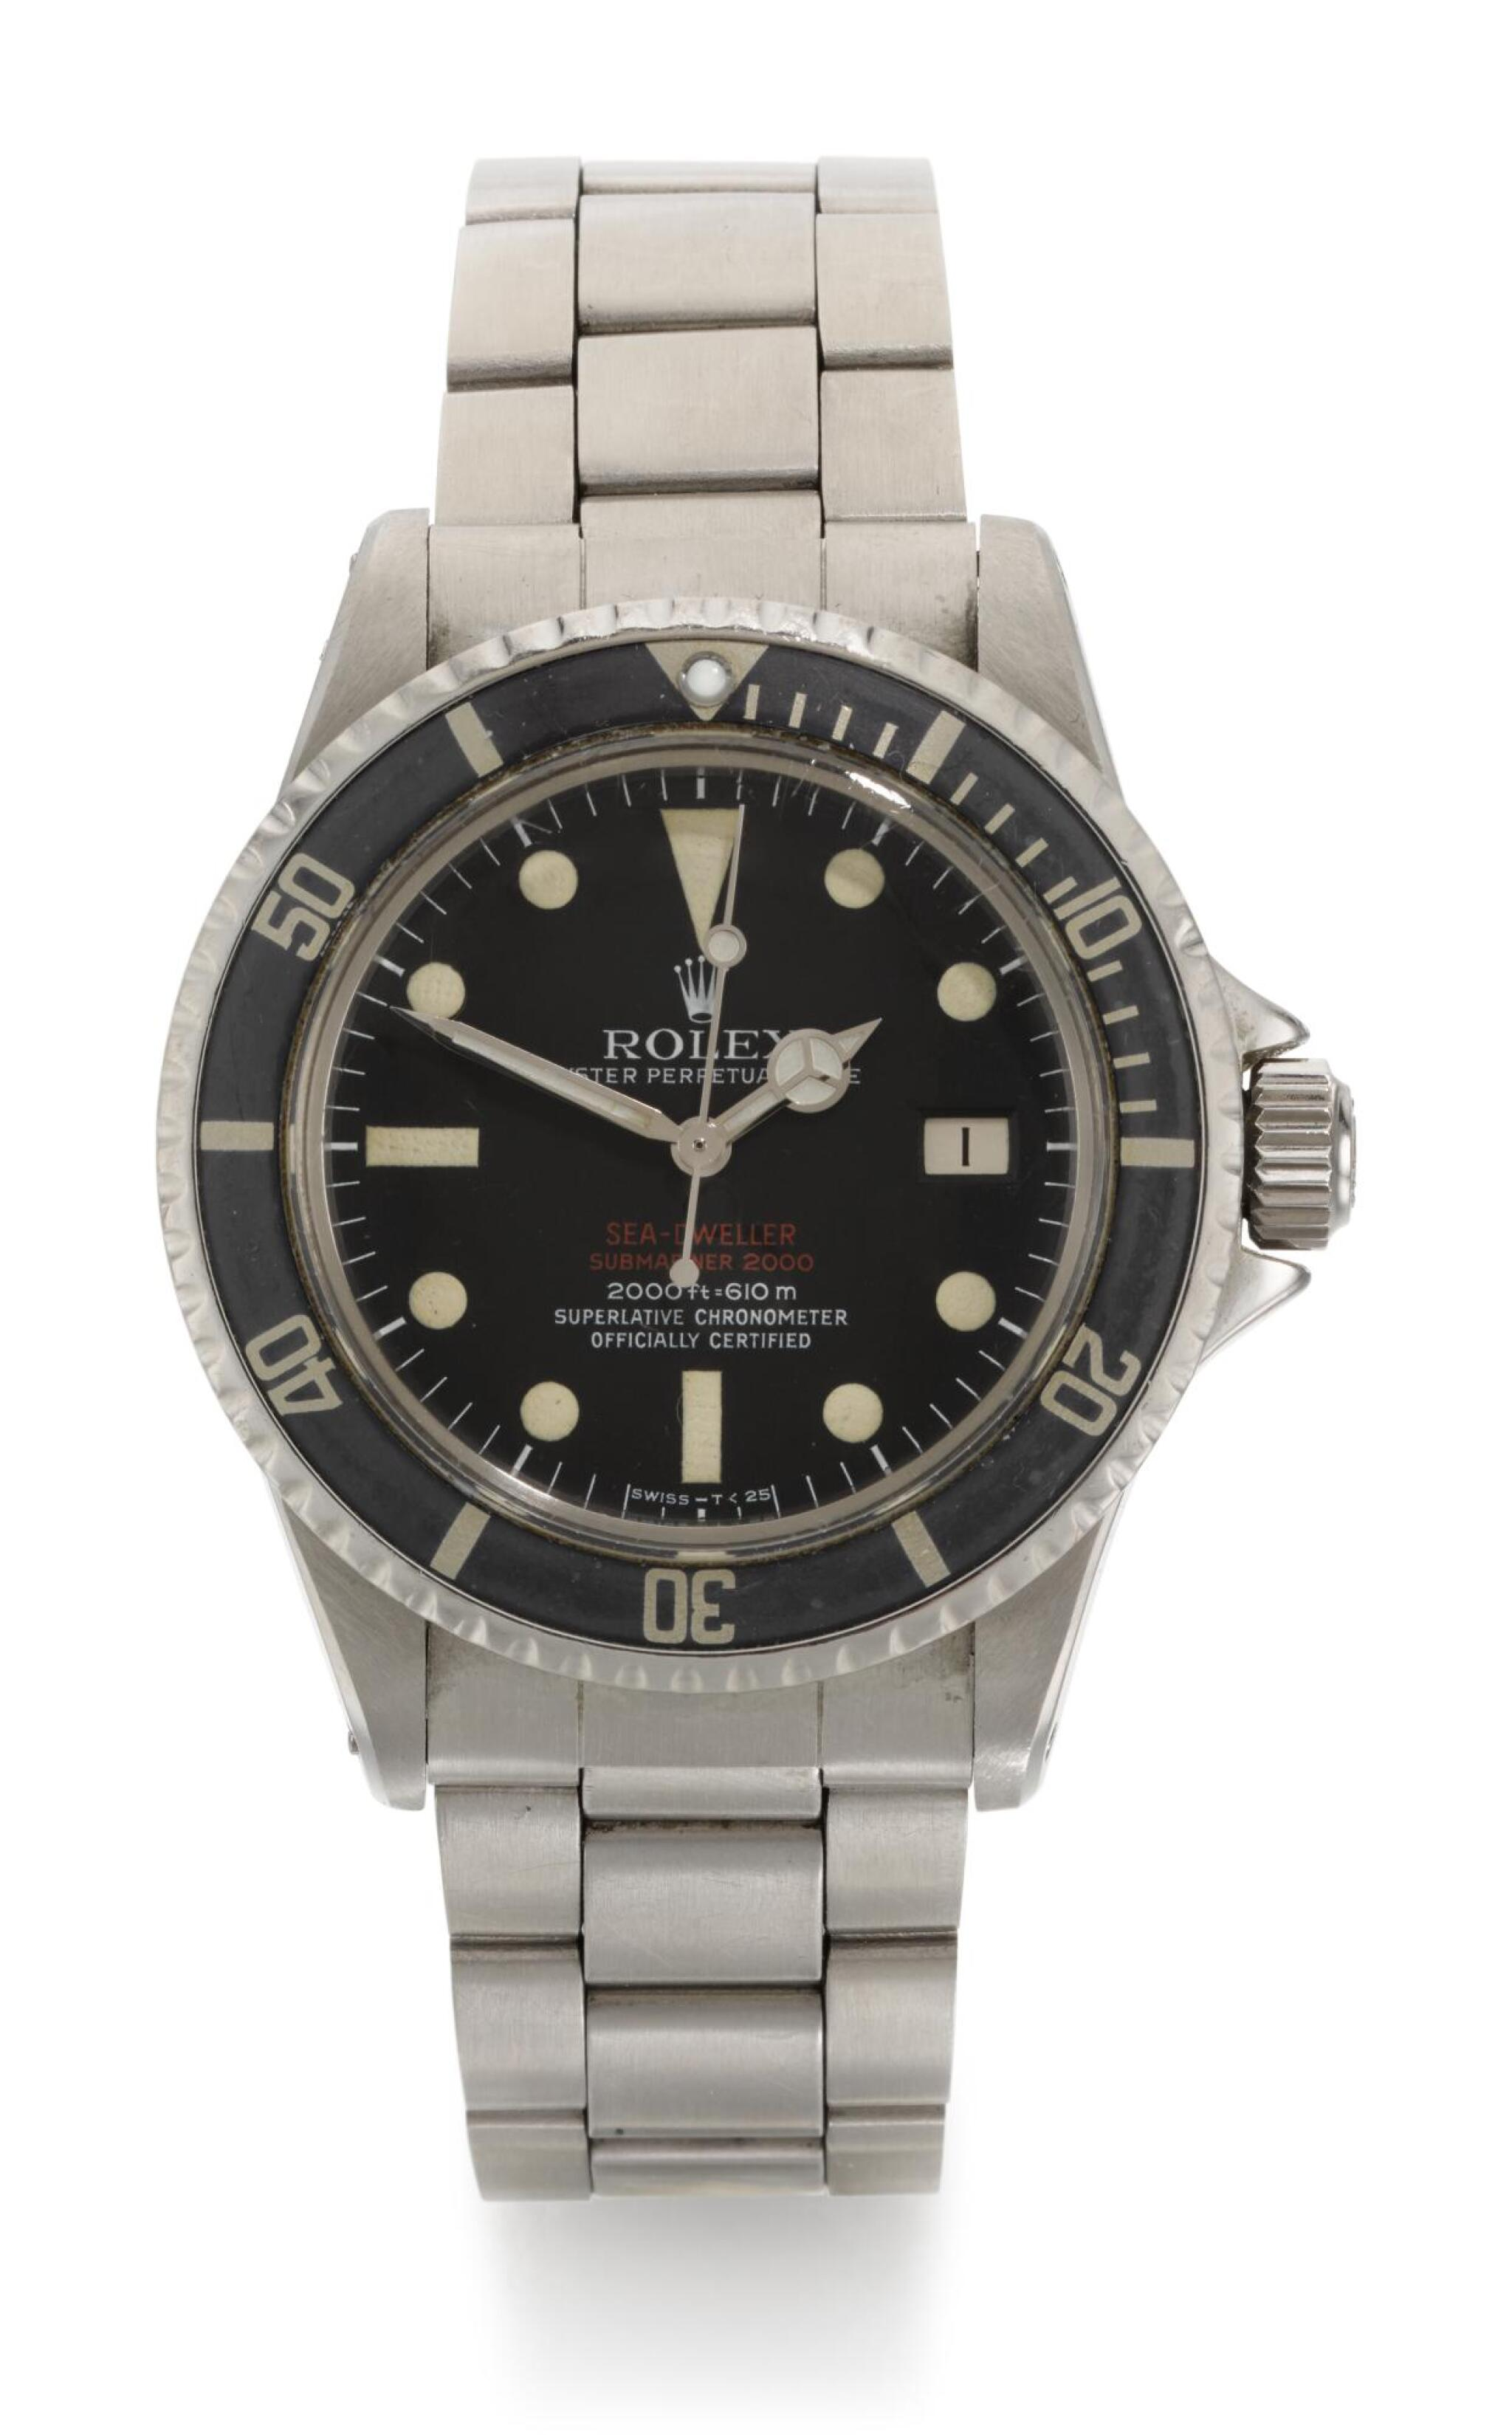 View full screen - View 1 of Lot 7. ROLEX | SEA-DWELLER DOUBLE RED, REFERENCE 1665, STAINLESS STEEL WRISTWATCH WITH HELIUM ESCAPE VALVE, DATE AND BRACELET, CIRCA 1967.